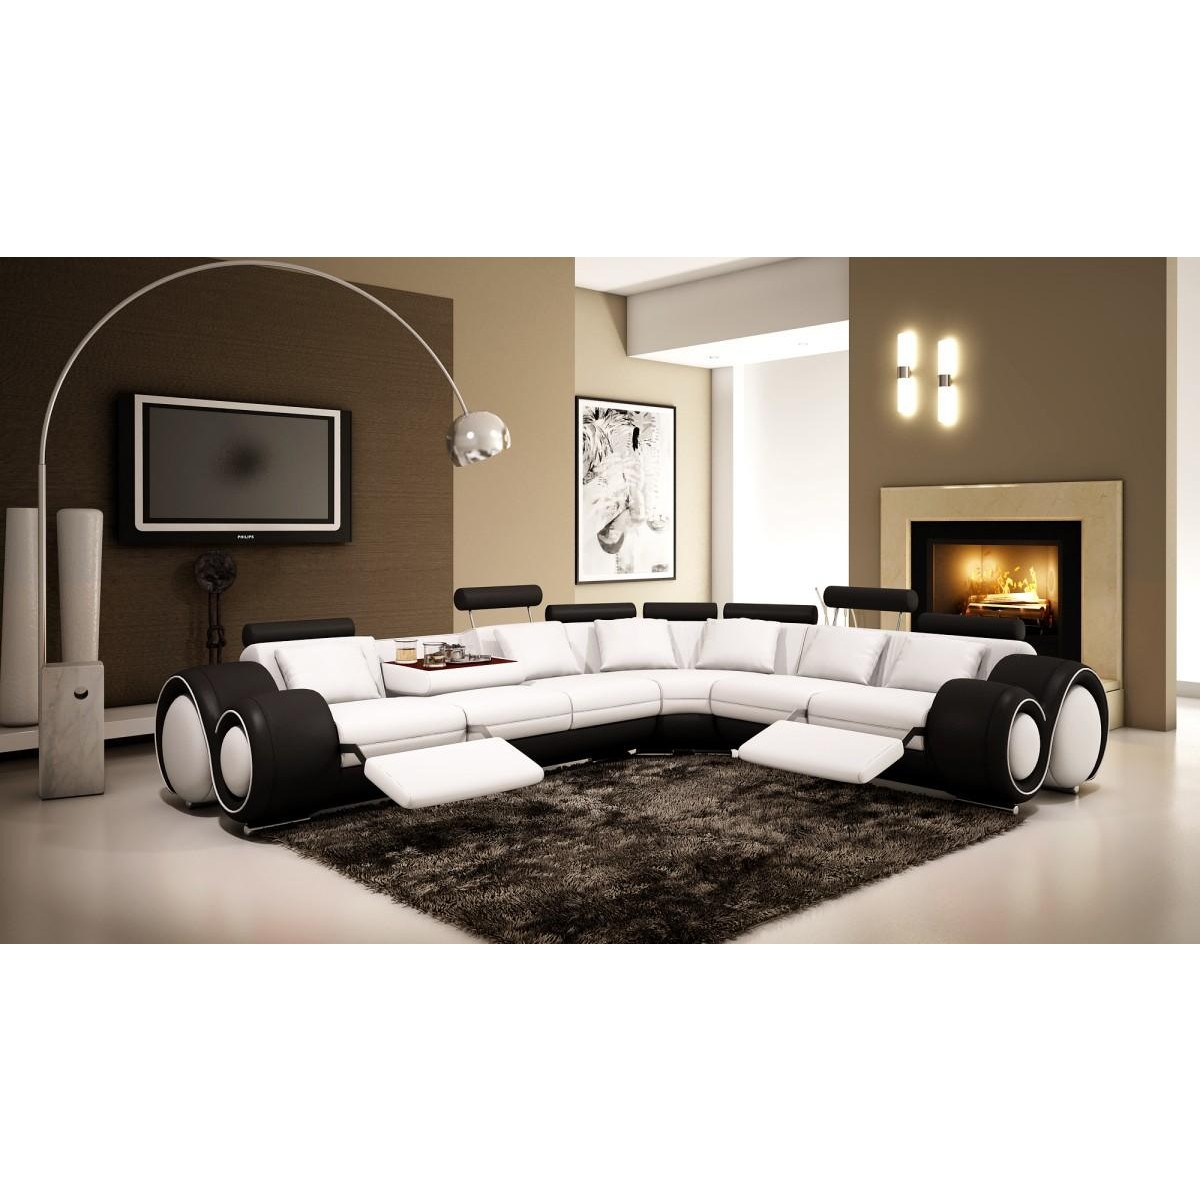 4087 modern bonded leather sectional sofa with recliners compact sleeper contemporary and luxury furniture living room bedroom la